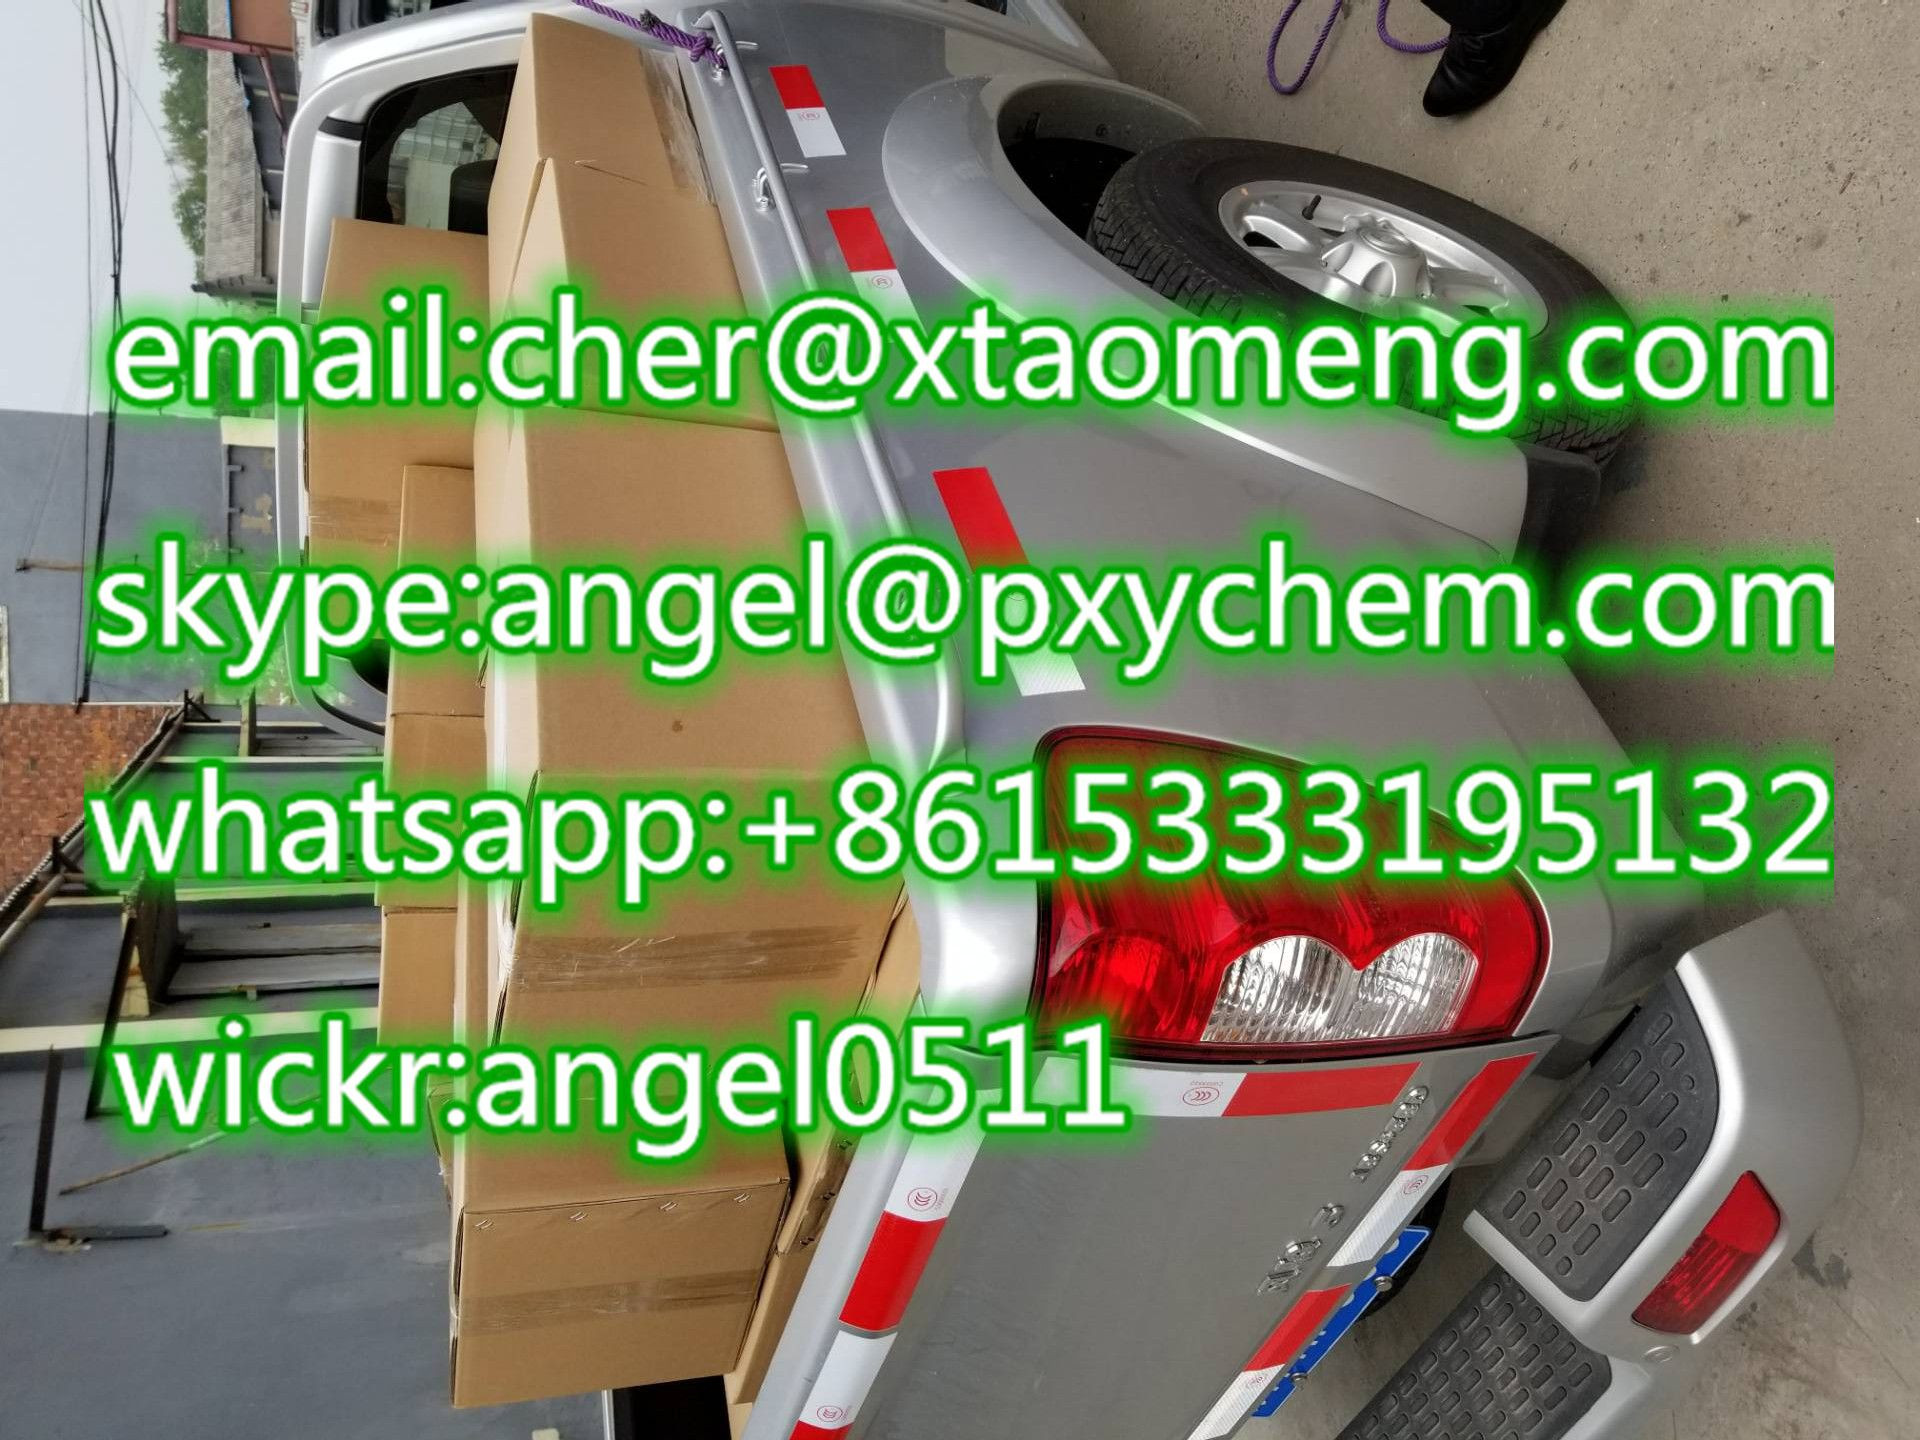 China wholesalar PMK CAS: 13605-48-6  email:cher@xtaomeng.com wickrme:angel0511